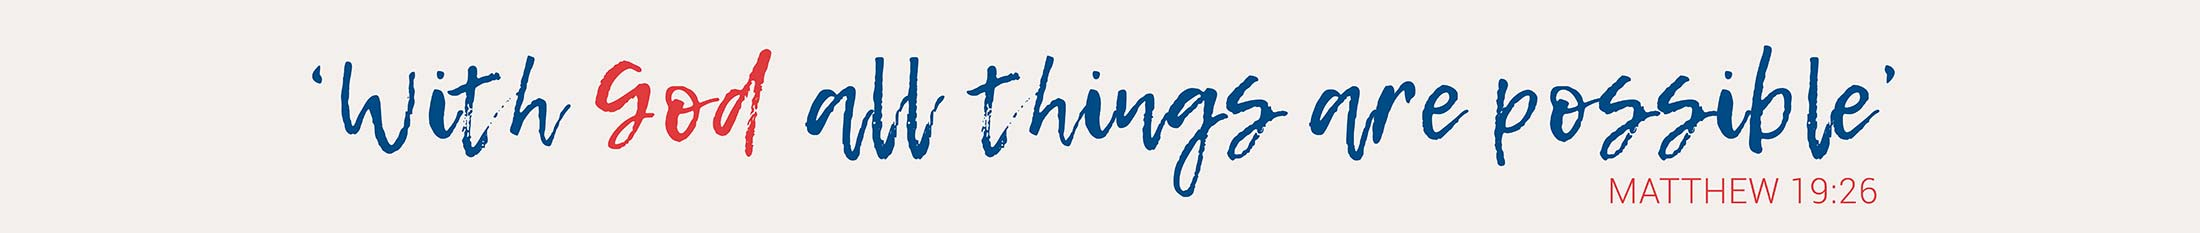 charlton christian college all things are possible